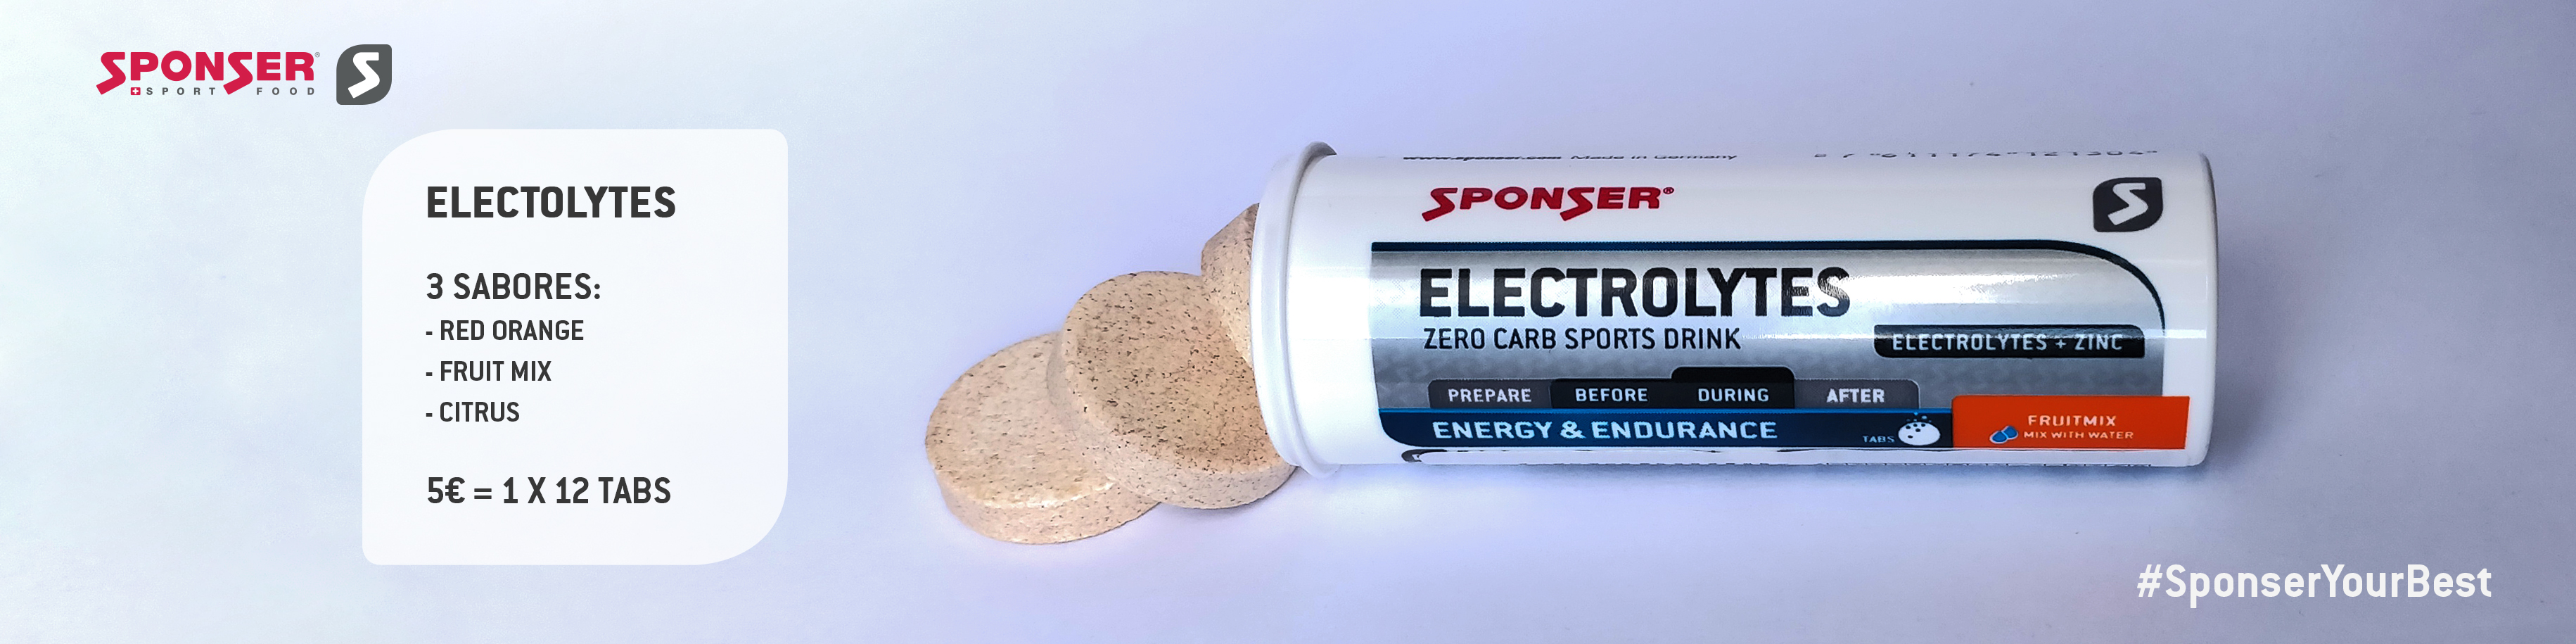 /GEONATLIFE SPORT PRODUCTS & EVENTS - Electrolytes